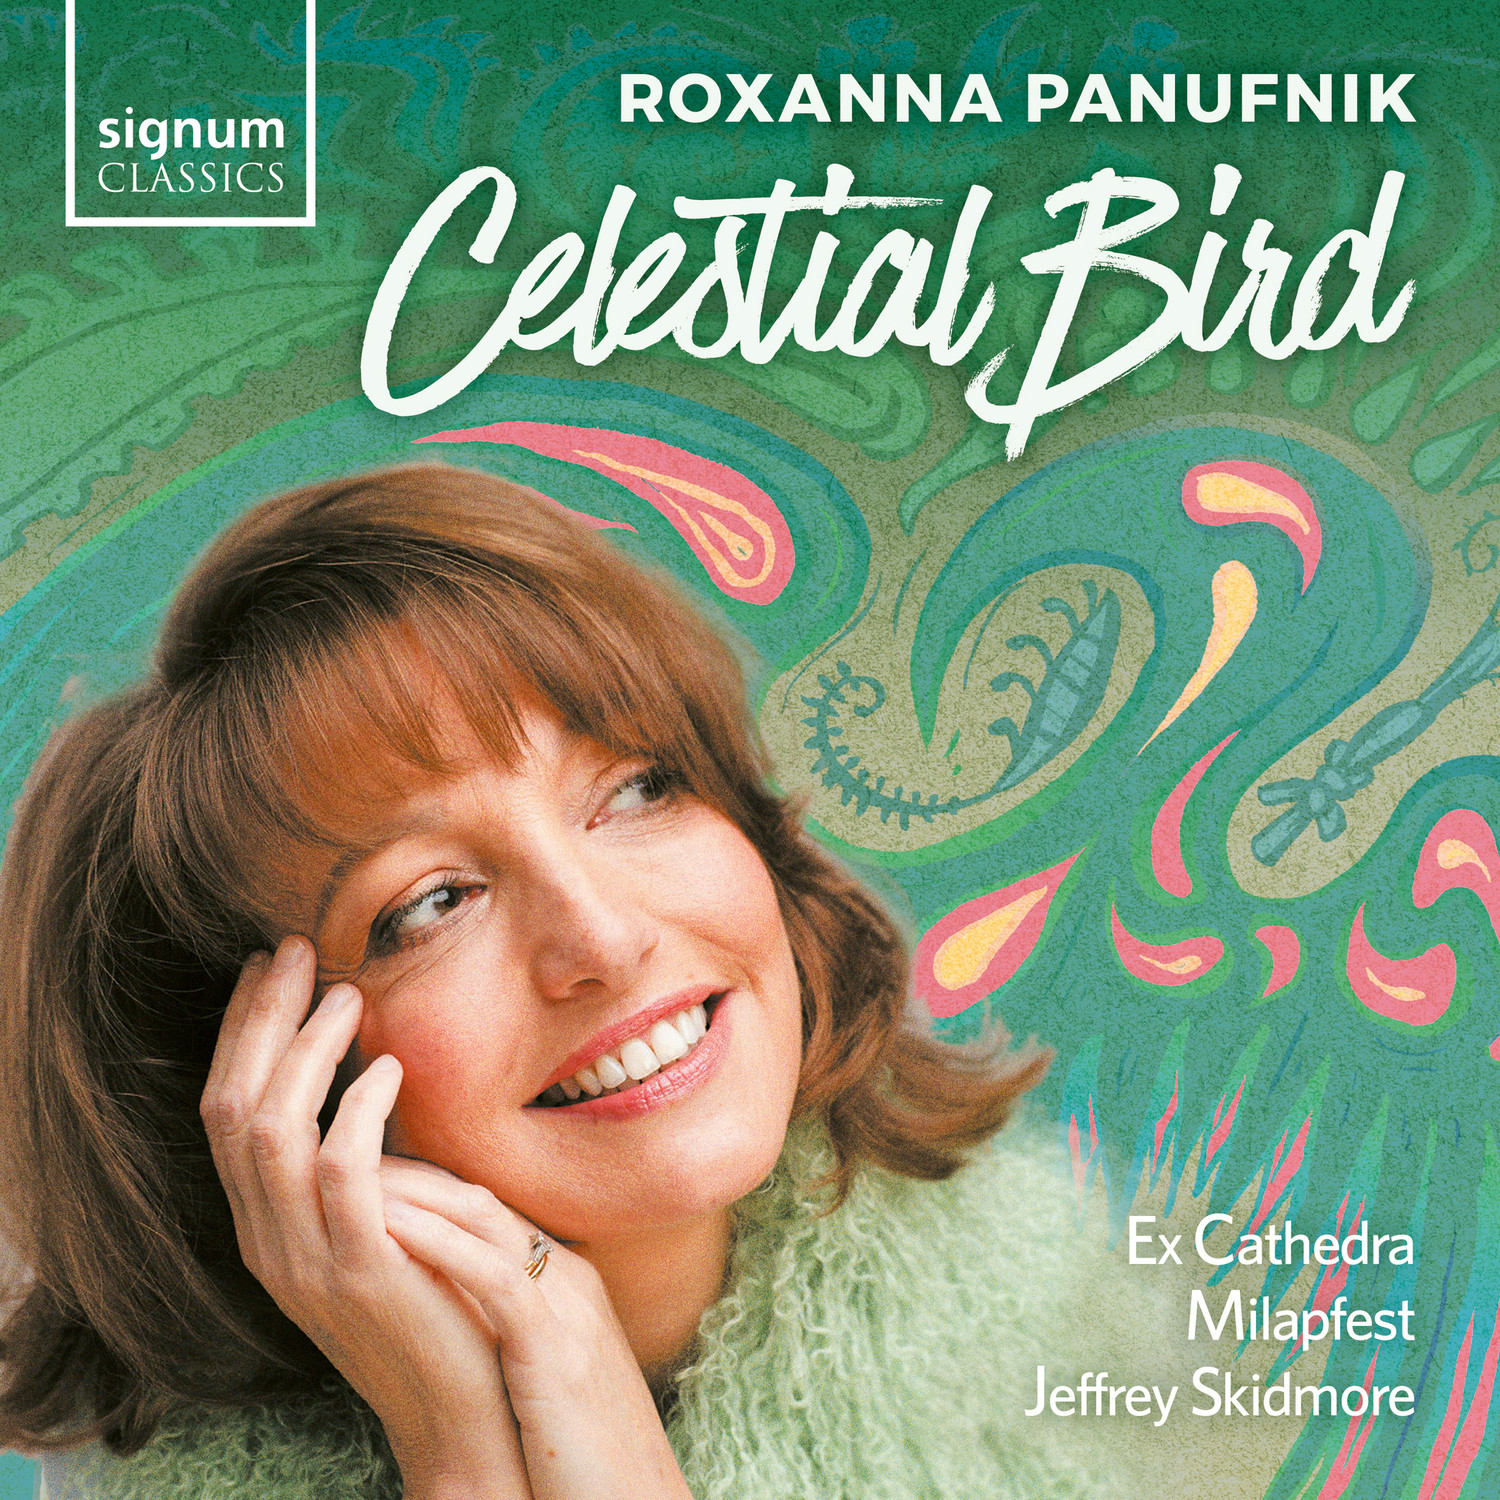 Caption: Roxanna Panufnik's Celestial Bird is featured, Credit: Signum Classics